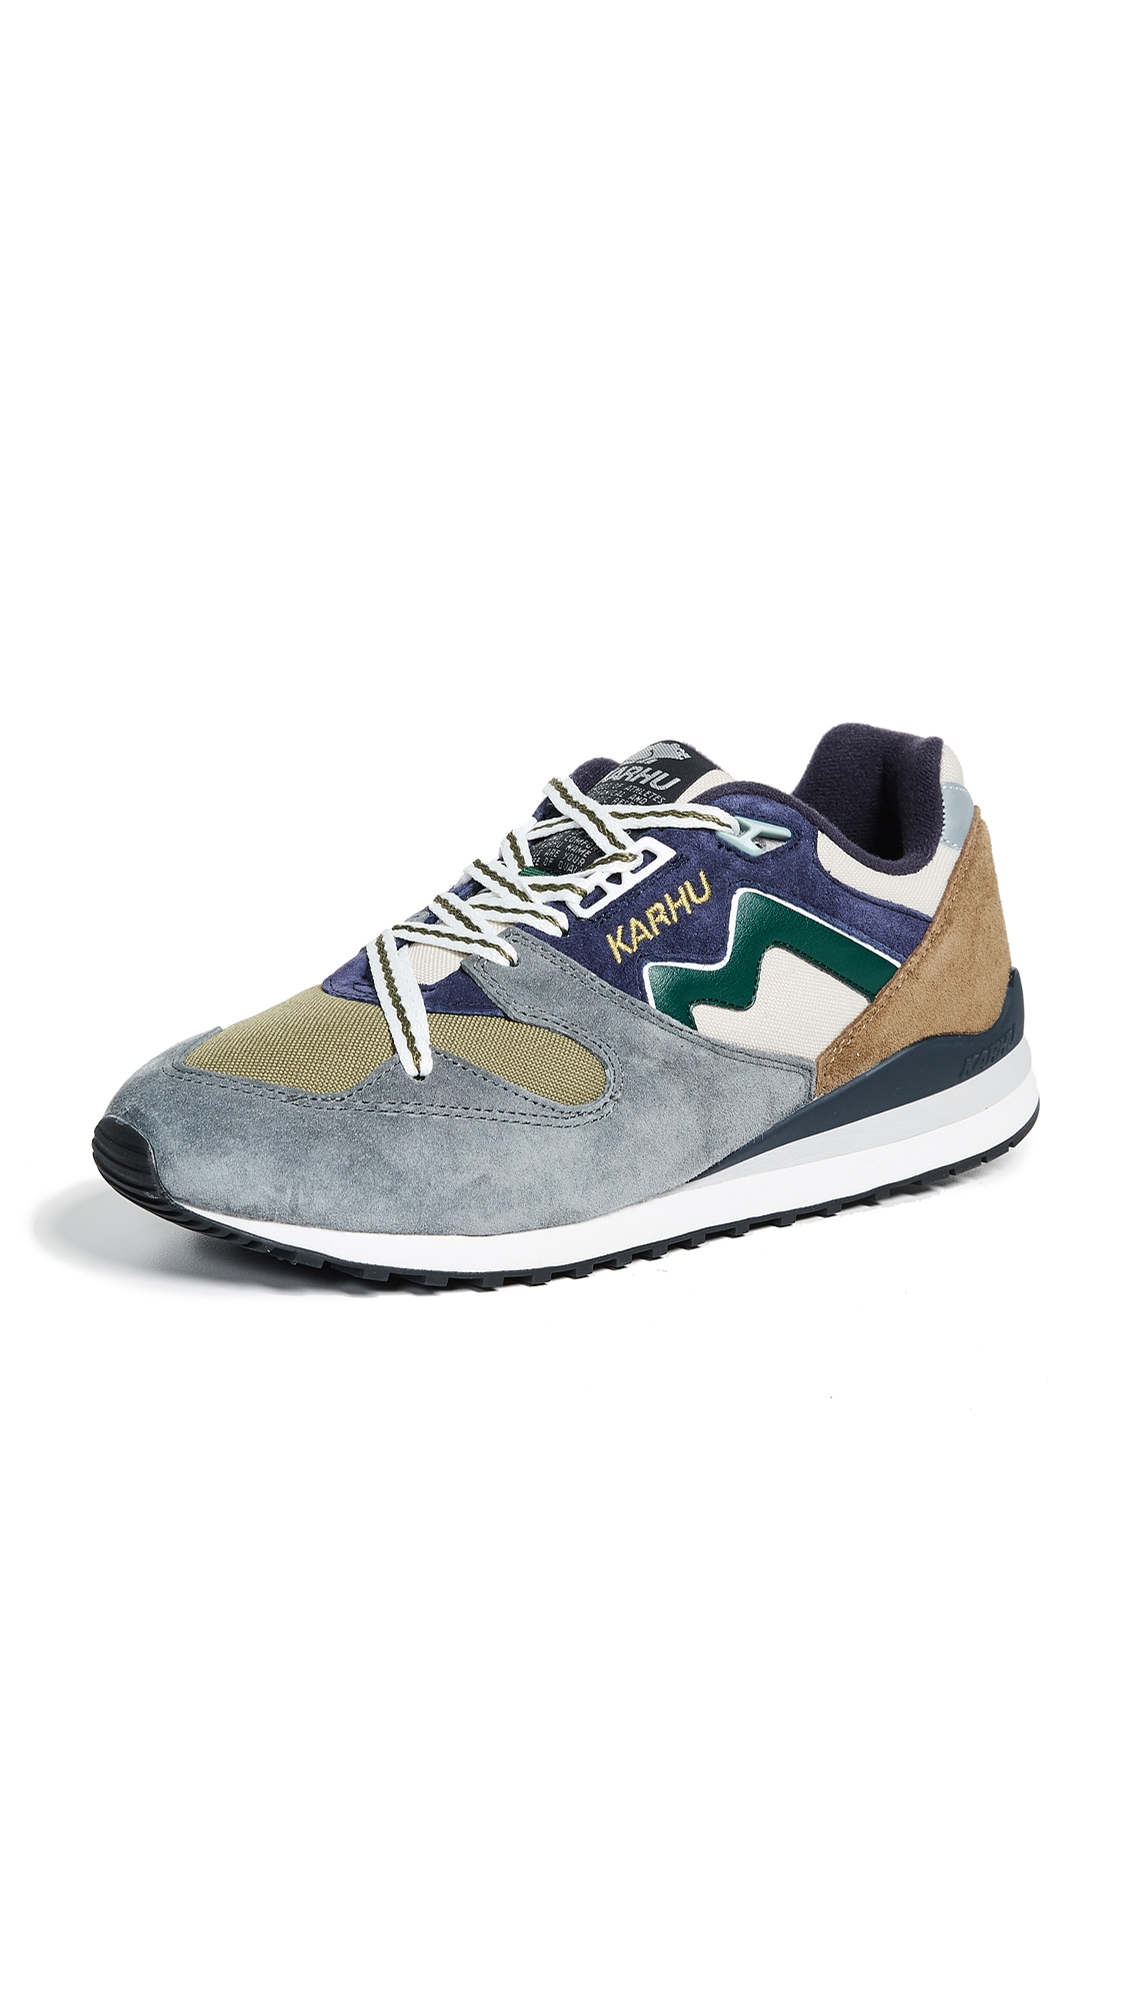 KARHU Men'S Synchron Color-Block Lace-Up Sneakers in Multi